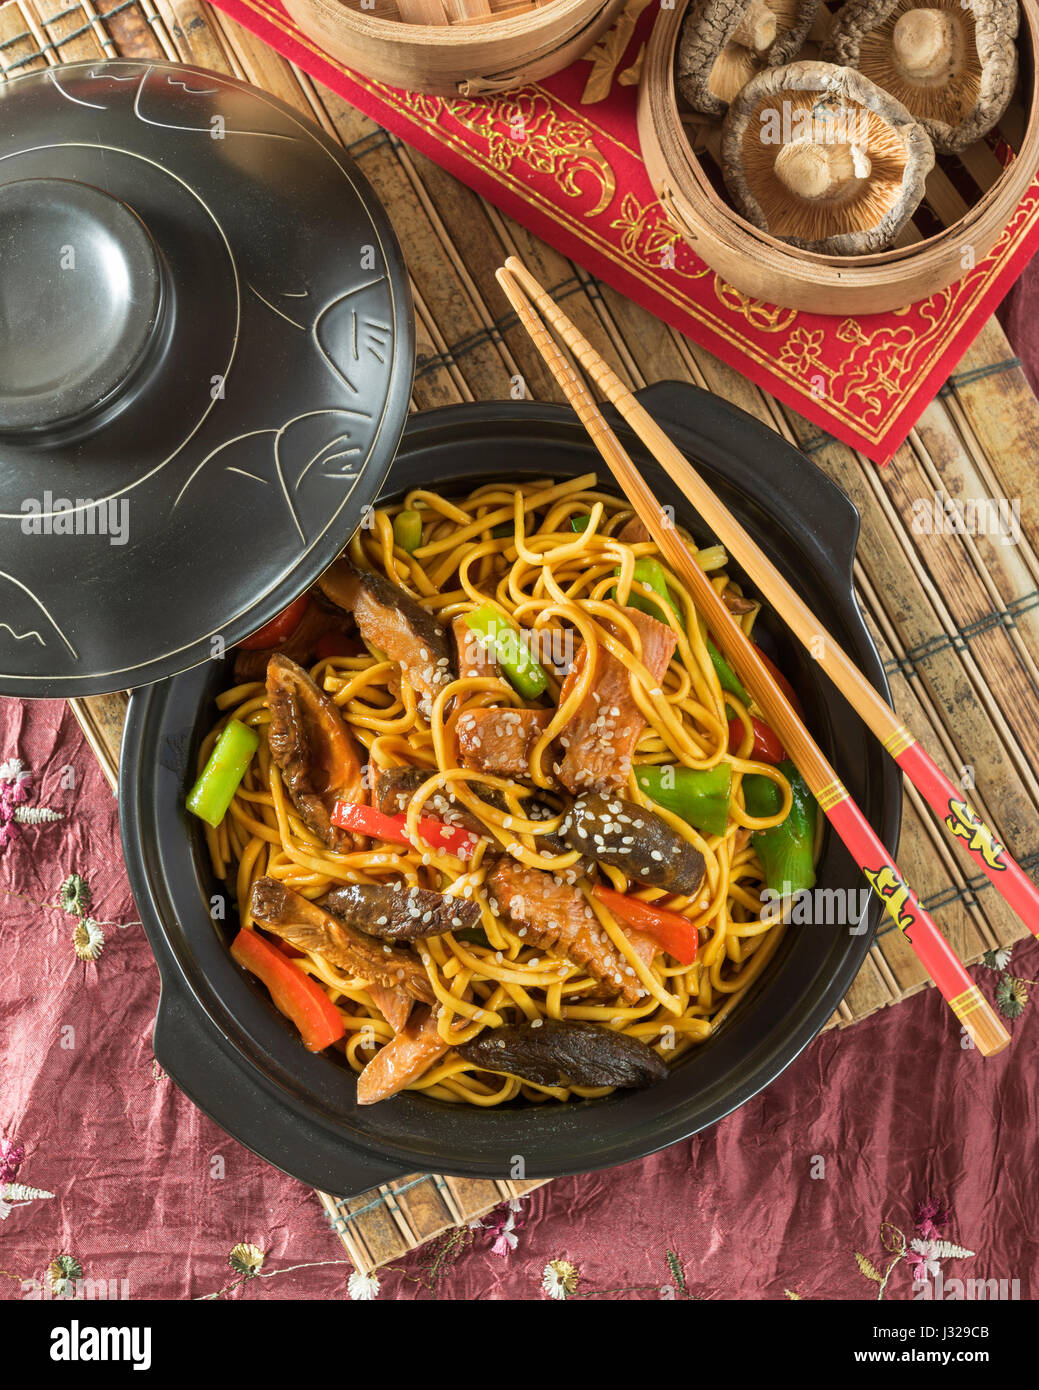 Hoisin duck noodles. Chinese food - Stock Image